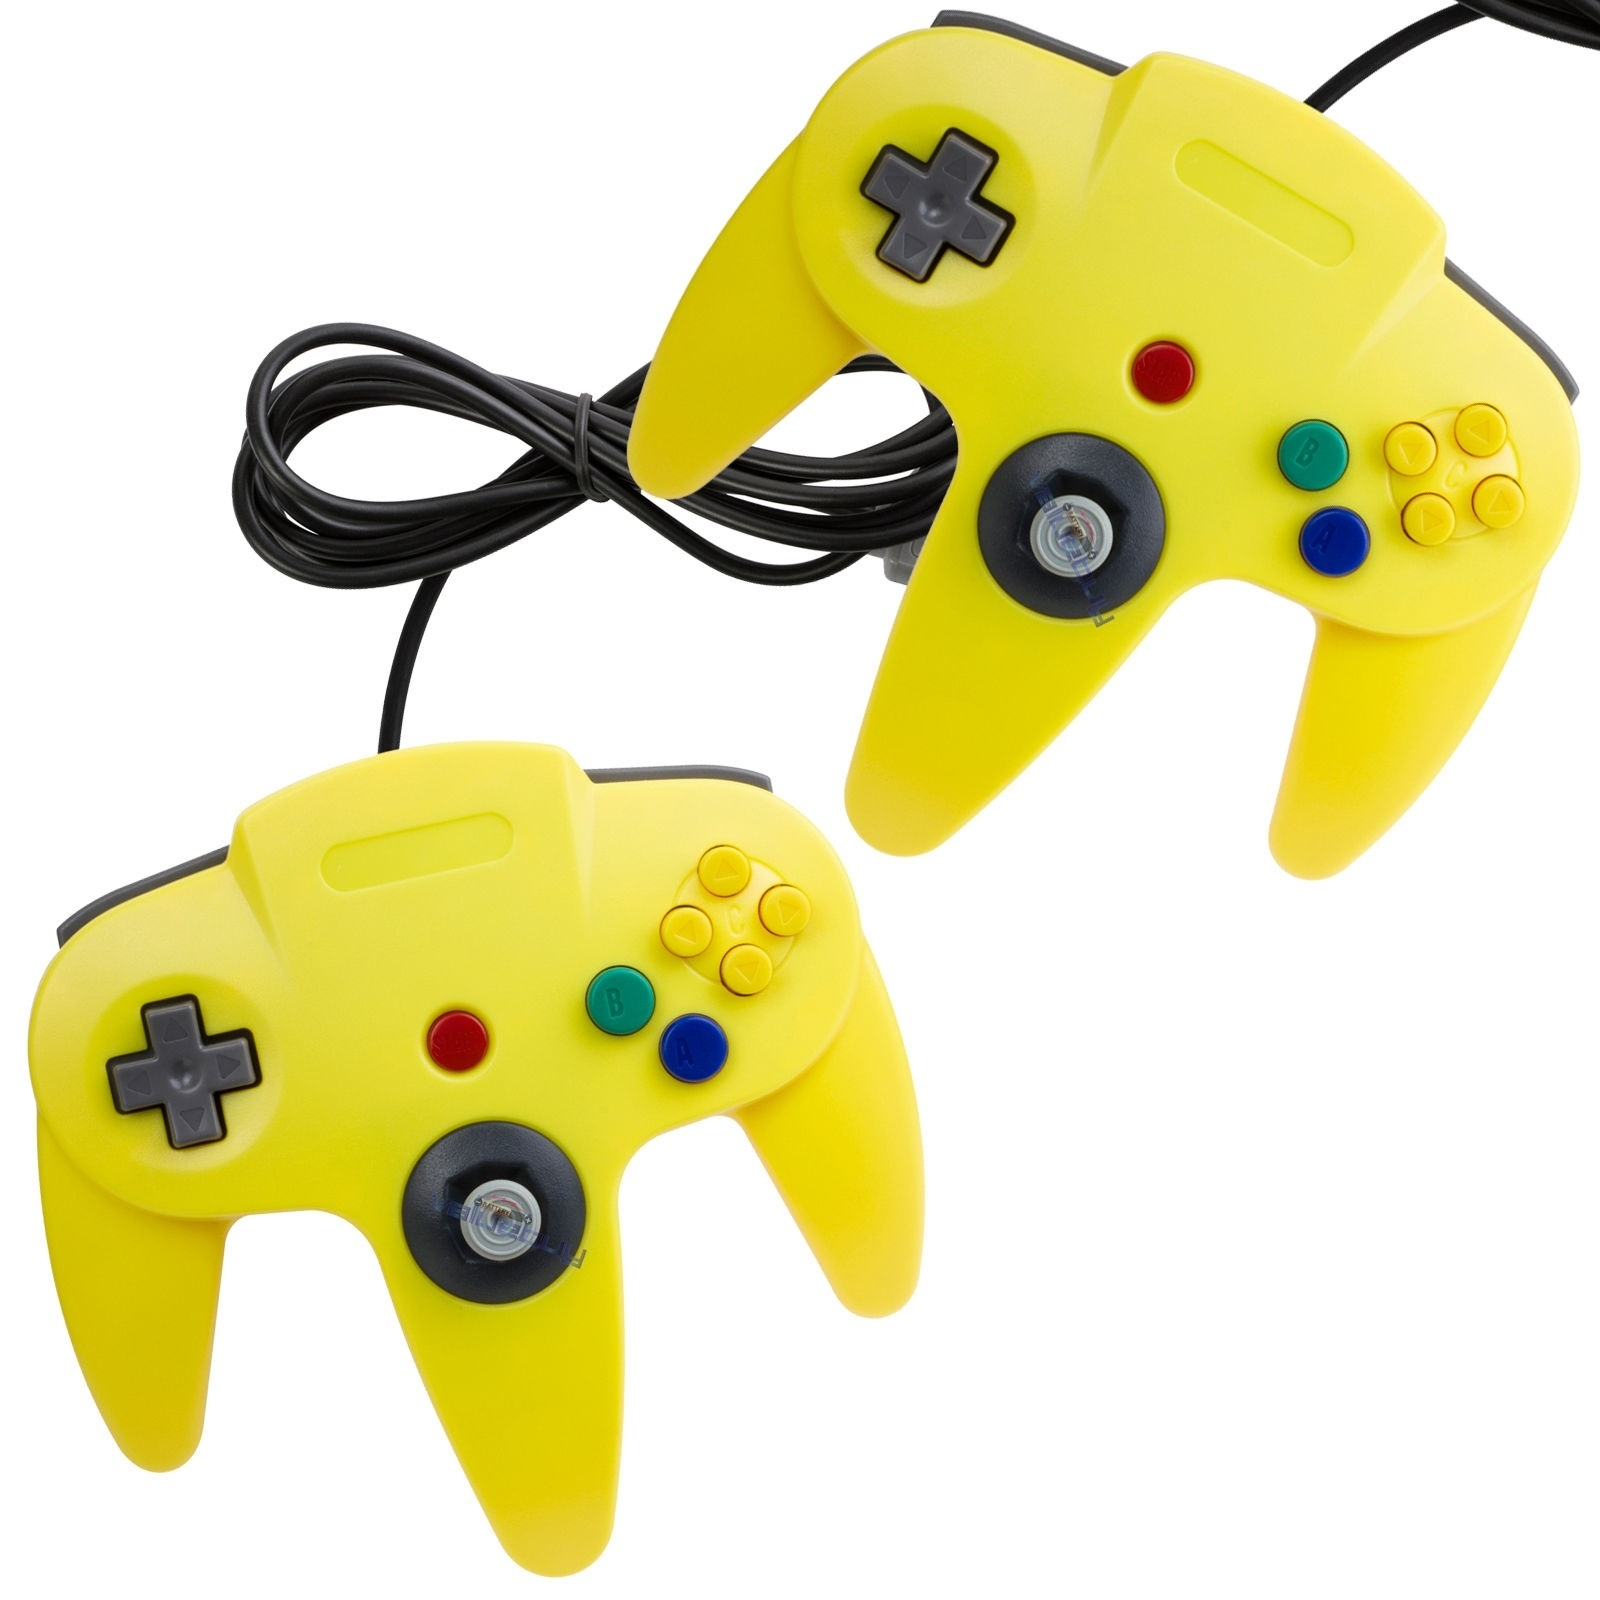 2 x Brand New Controller for Nintendo 64 Yellow Return Policy 30 Day Money Back Condition: Brand new. 3rd Party Products, Not A Nintendo Product.